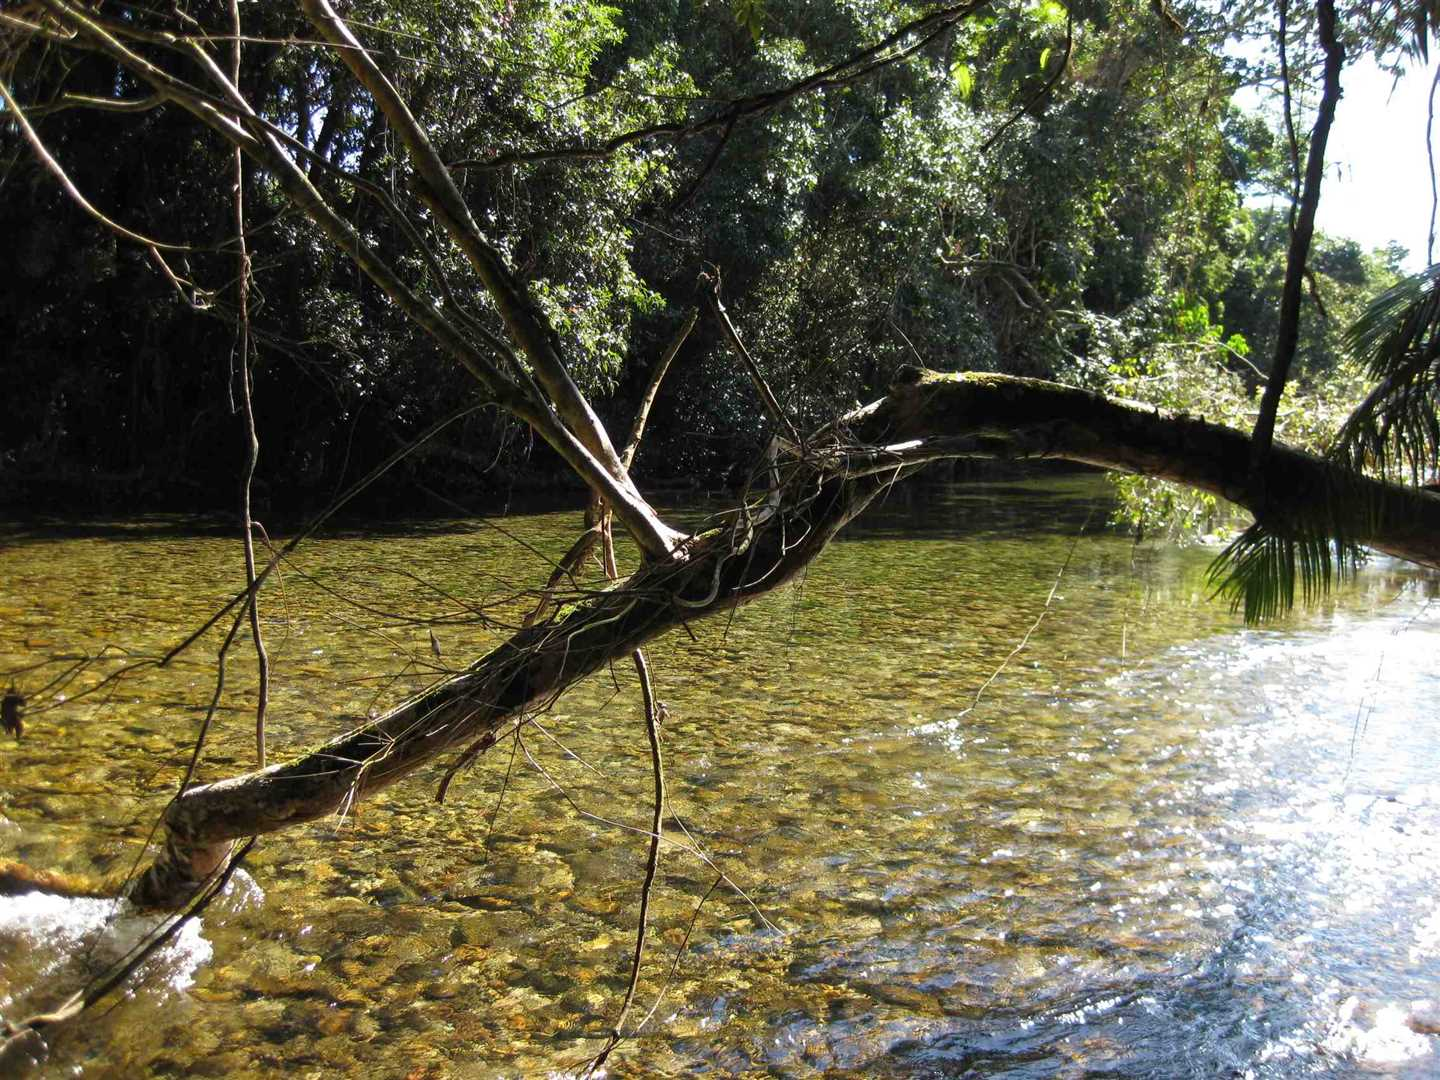 View of part of creek adjoining the property, photo 5